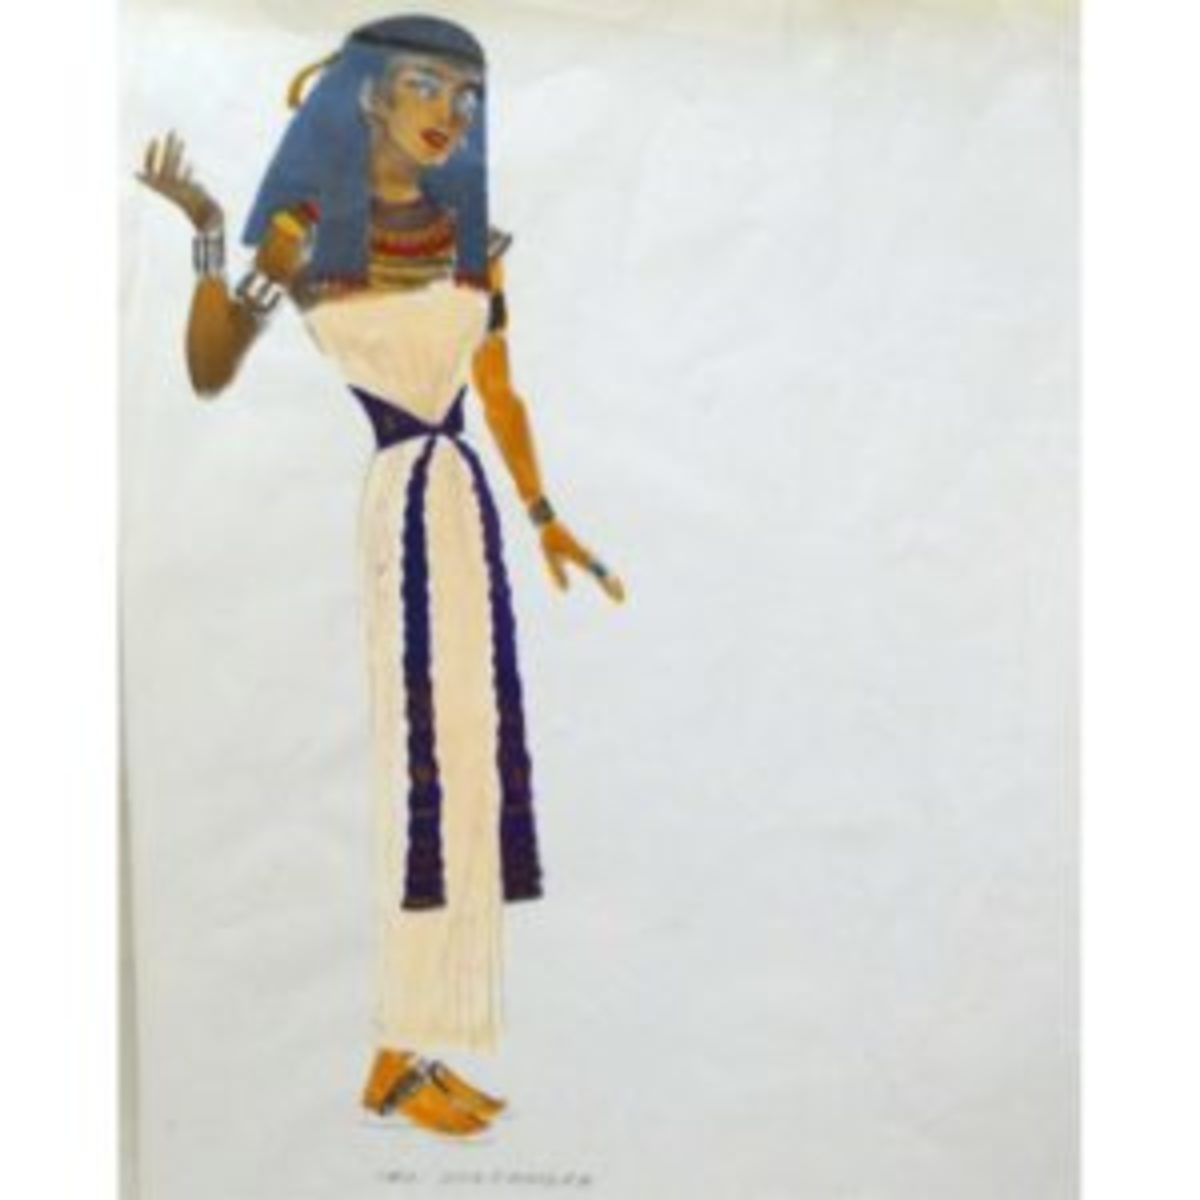 Original costume sketch by Jean Louis. Courtesy of Ruby Lane.